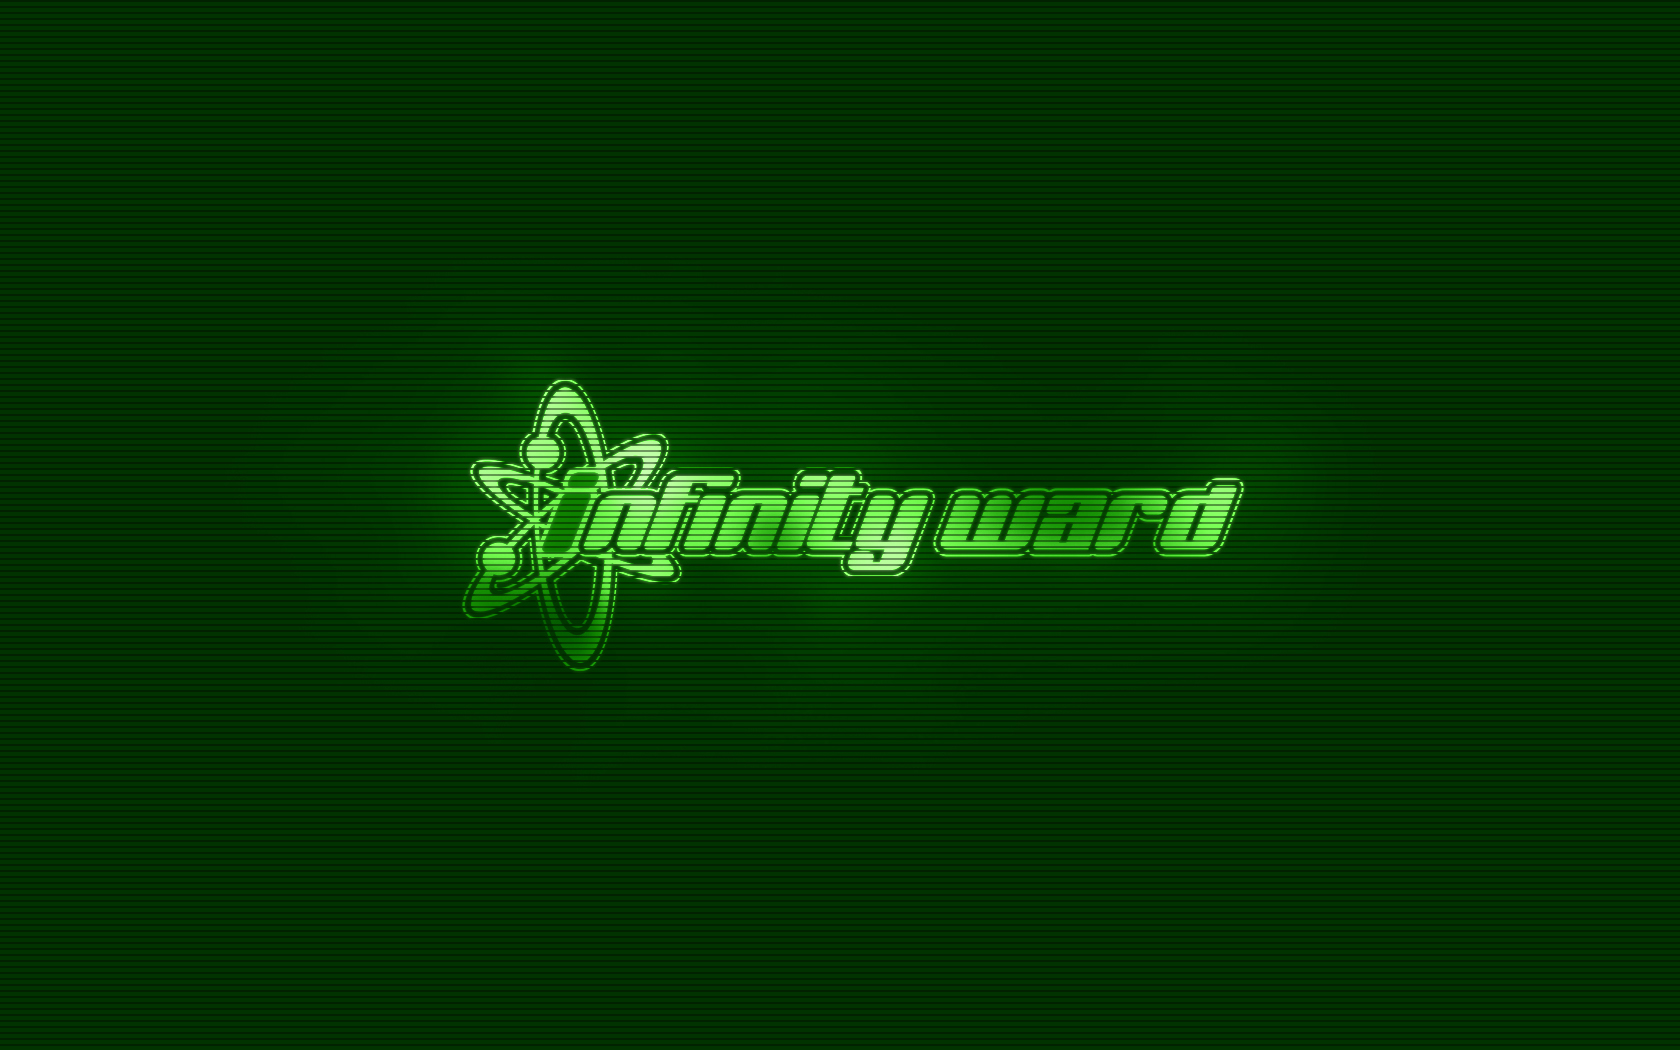 Infinity Ward Logo Wallpaper